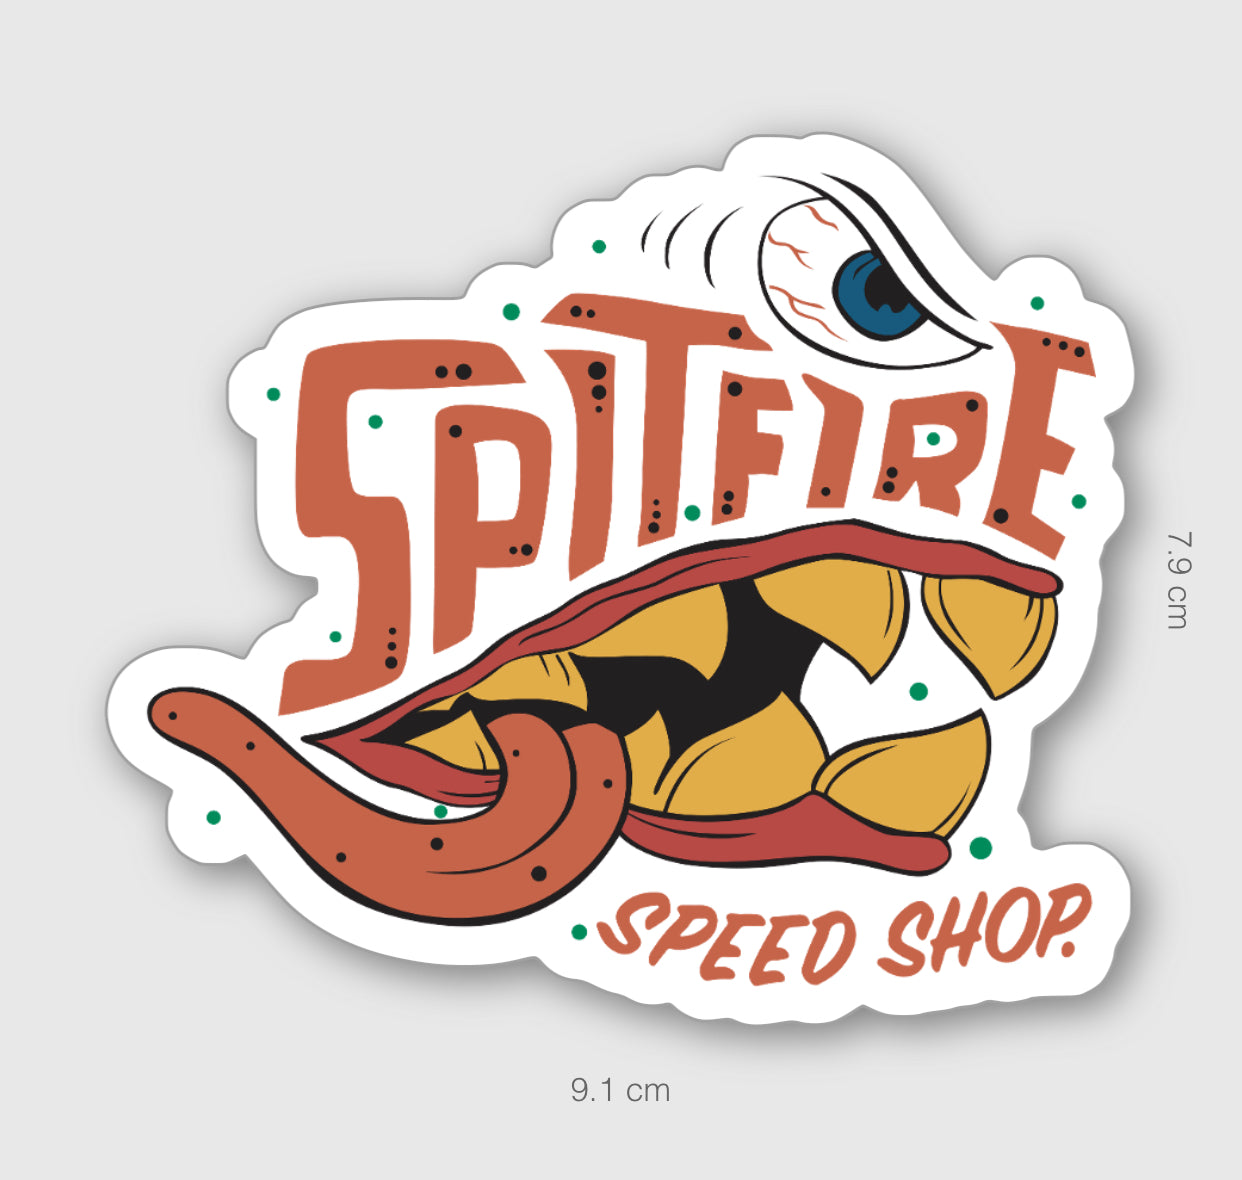 Spitfire Cartoon Sticker Large